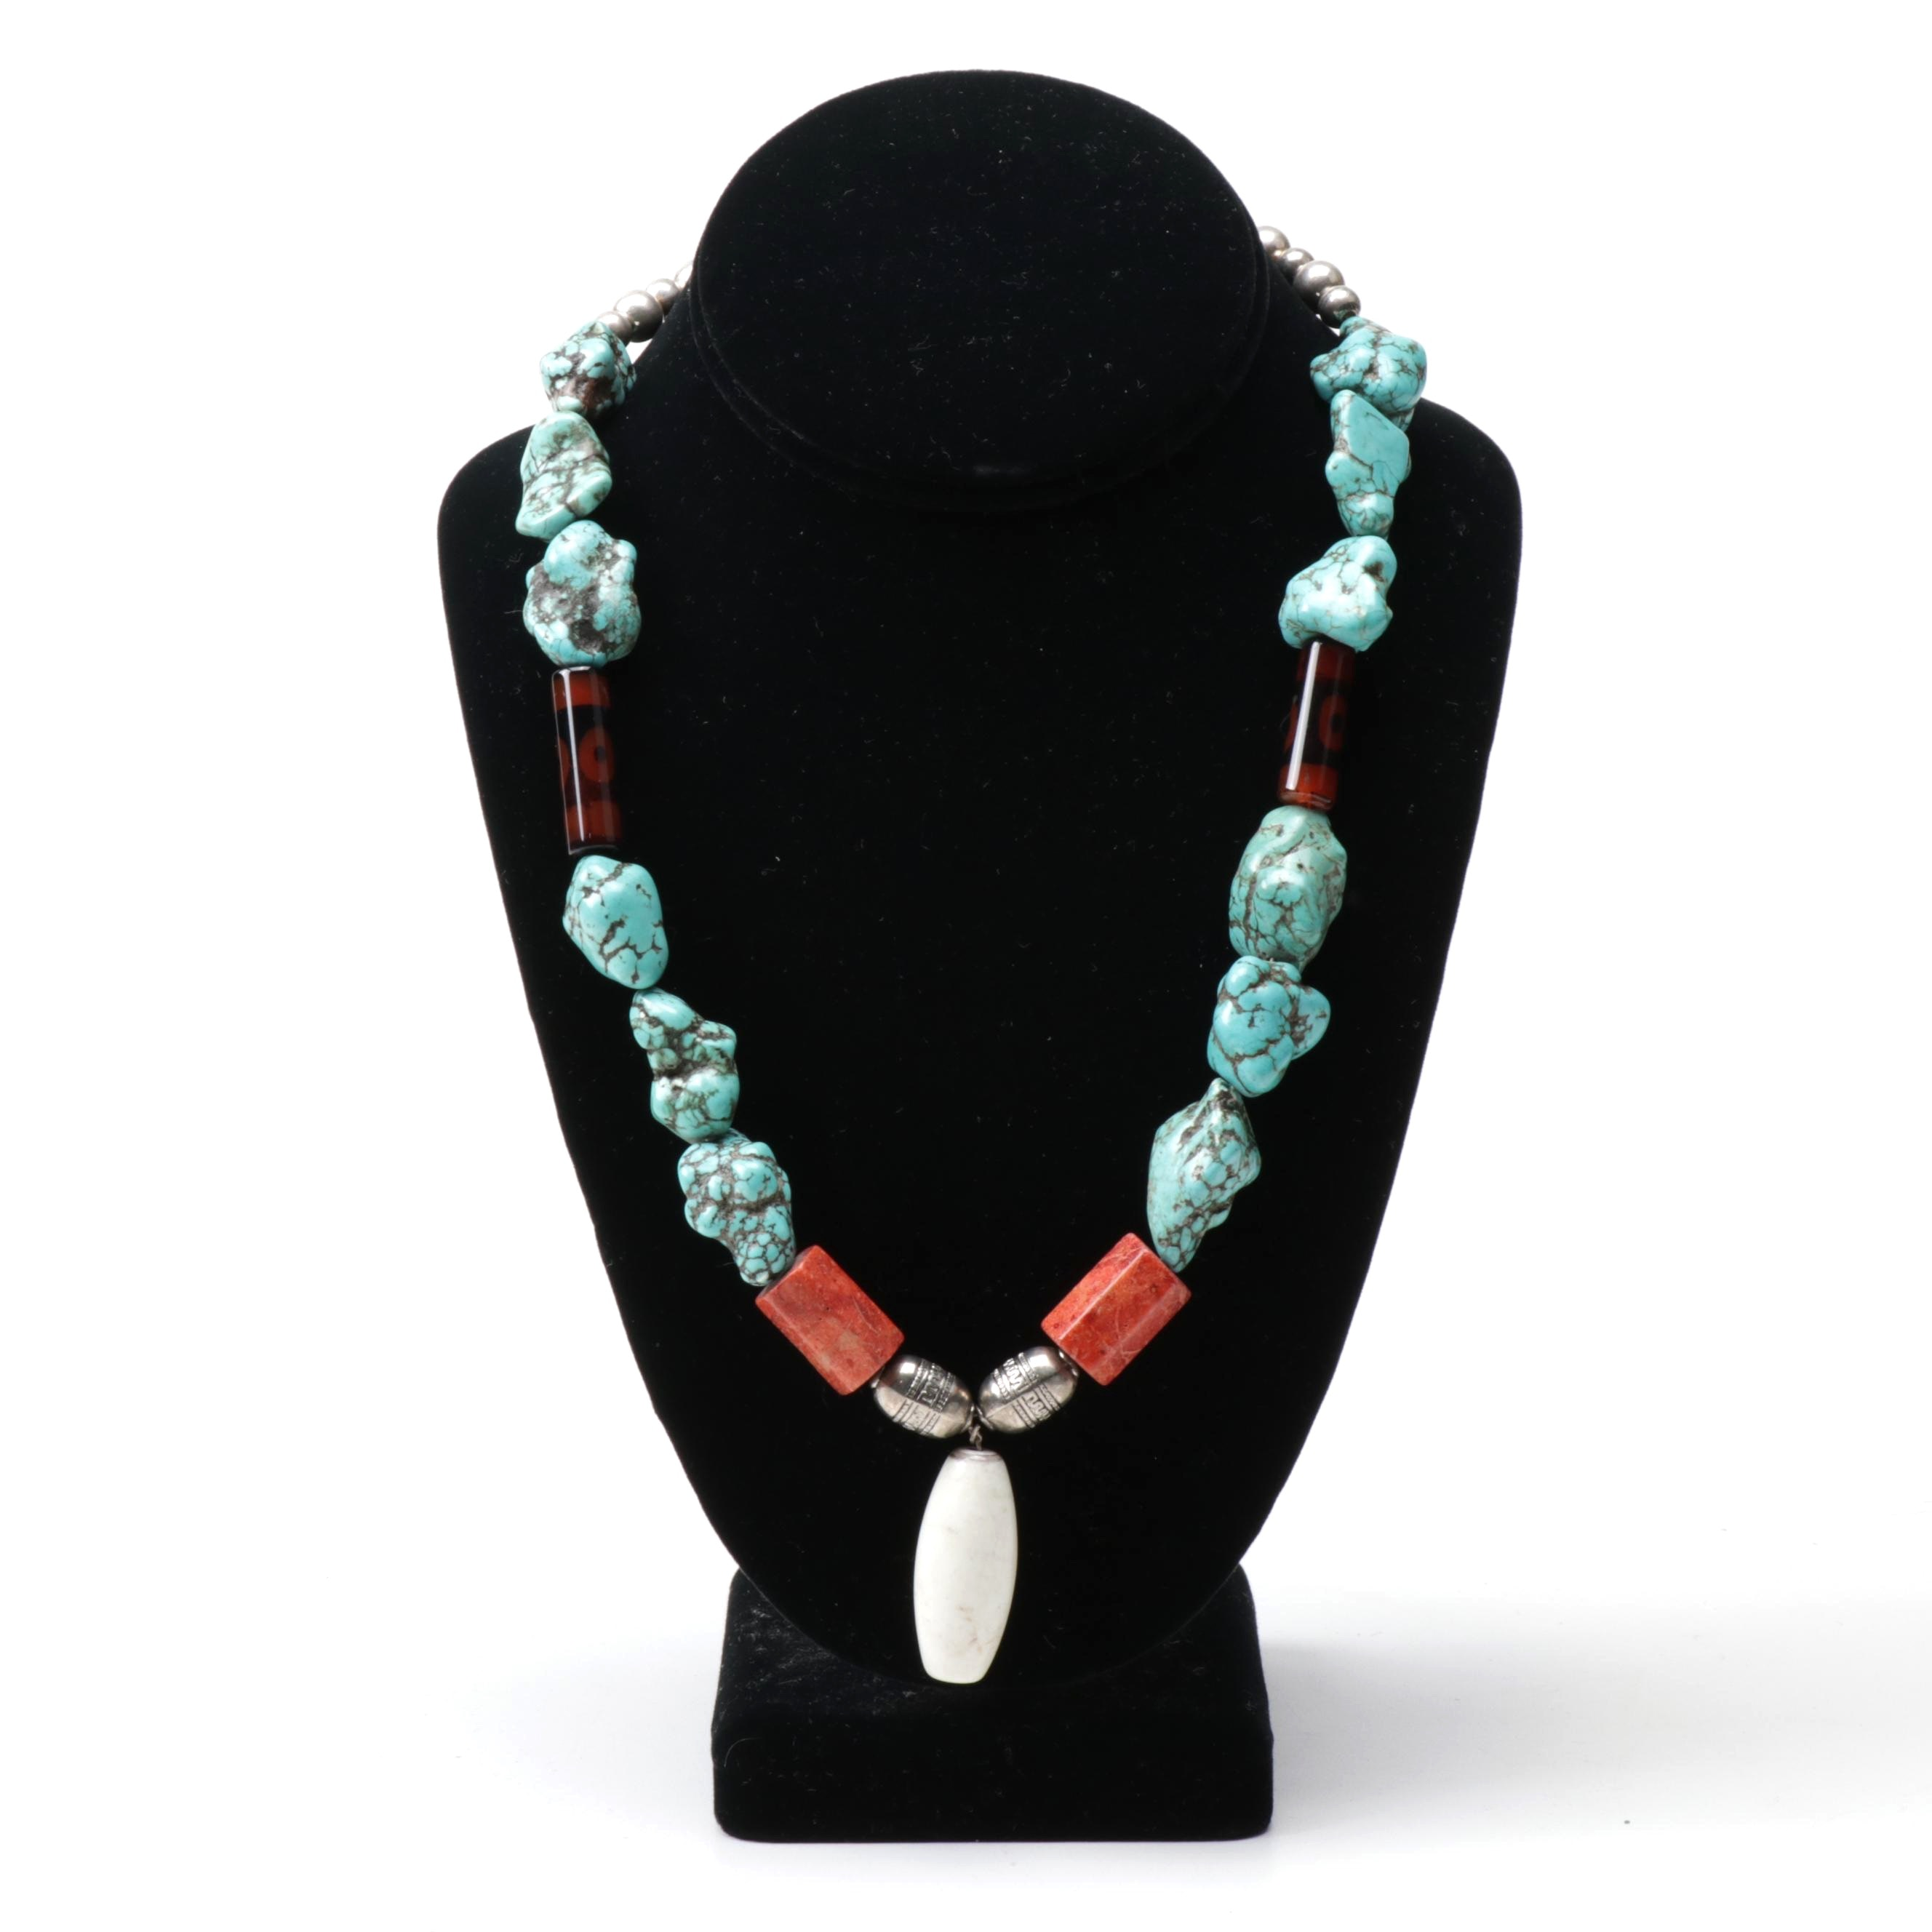 Turquoise, Coral, Howlite, and Glass Southwest Style Necklace